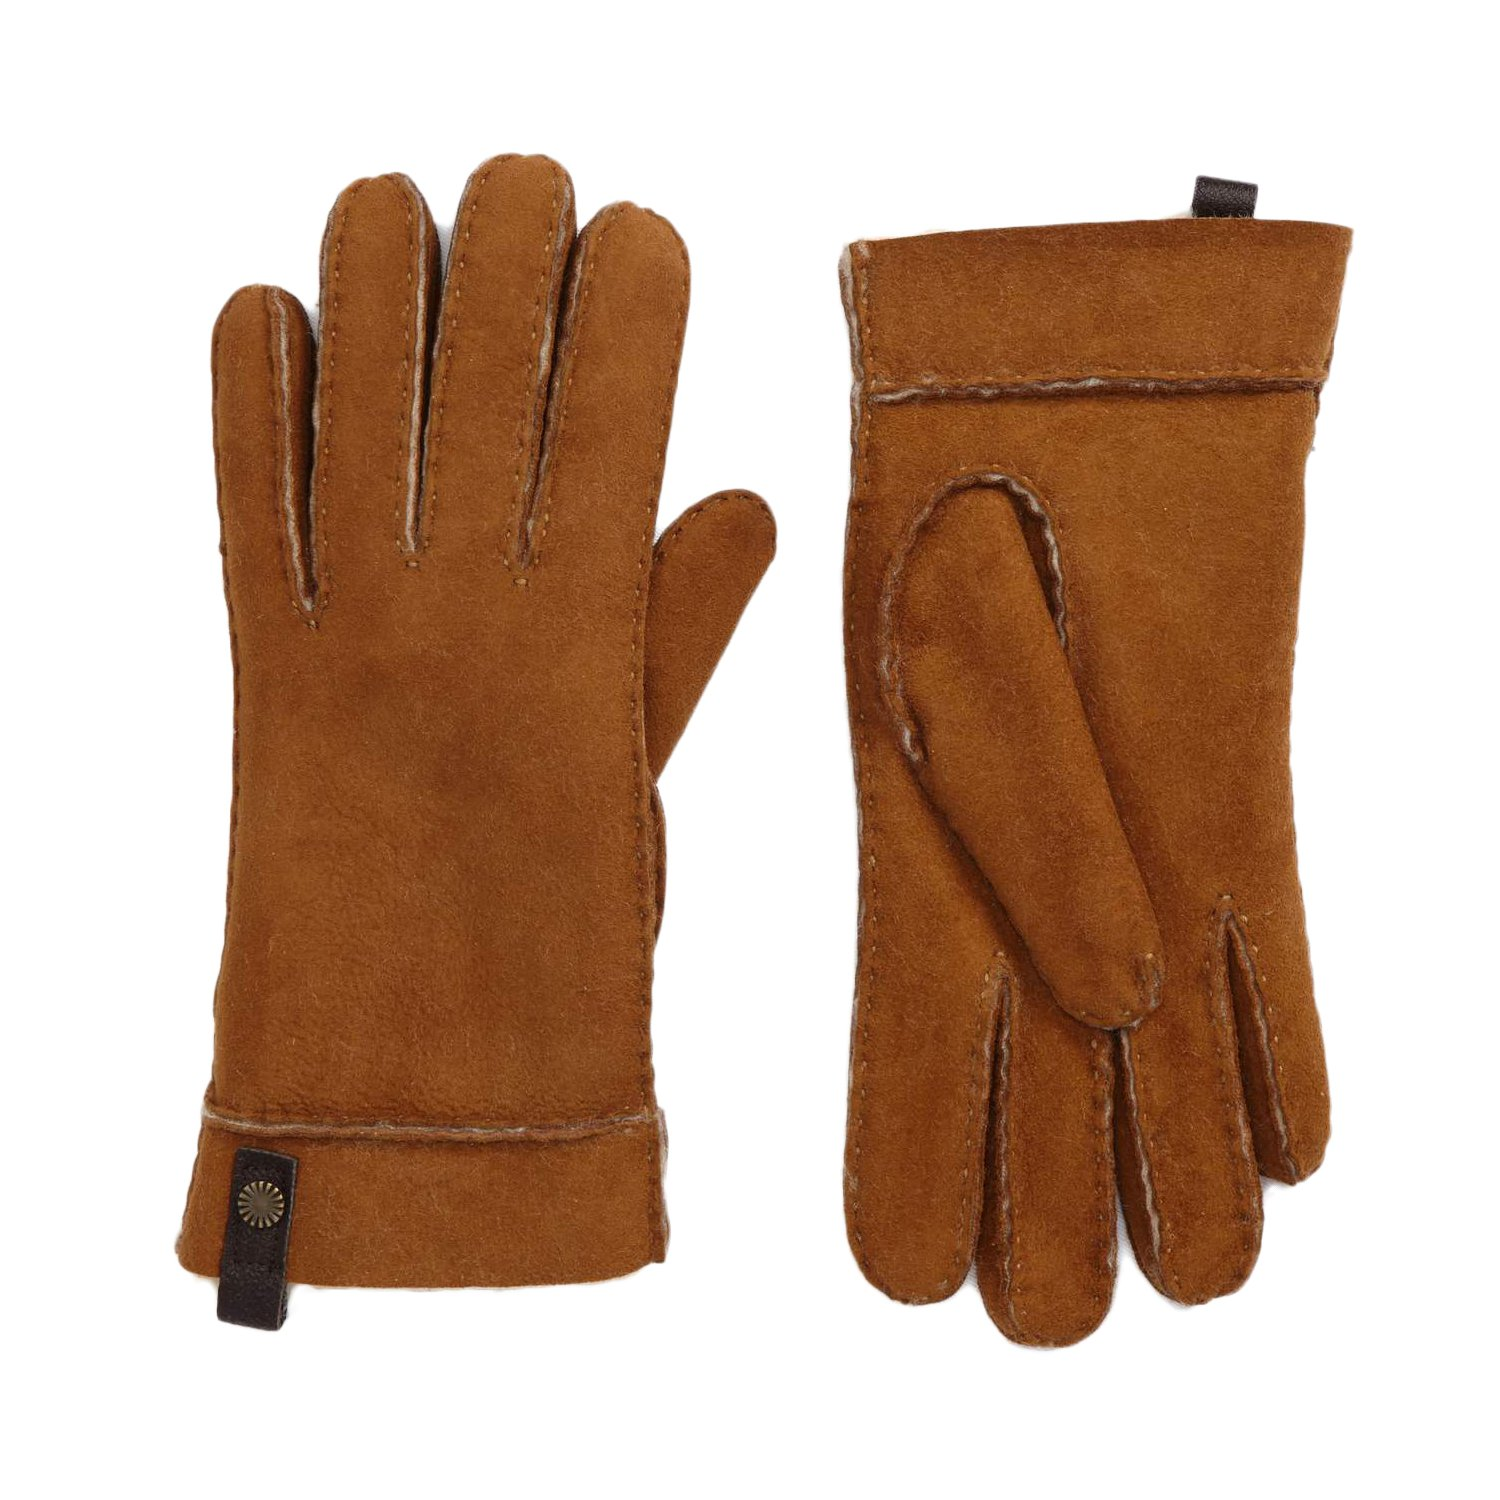 UGG Sheepskin Tenney Glove Women | Chestnut (16272) (M)